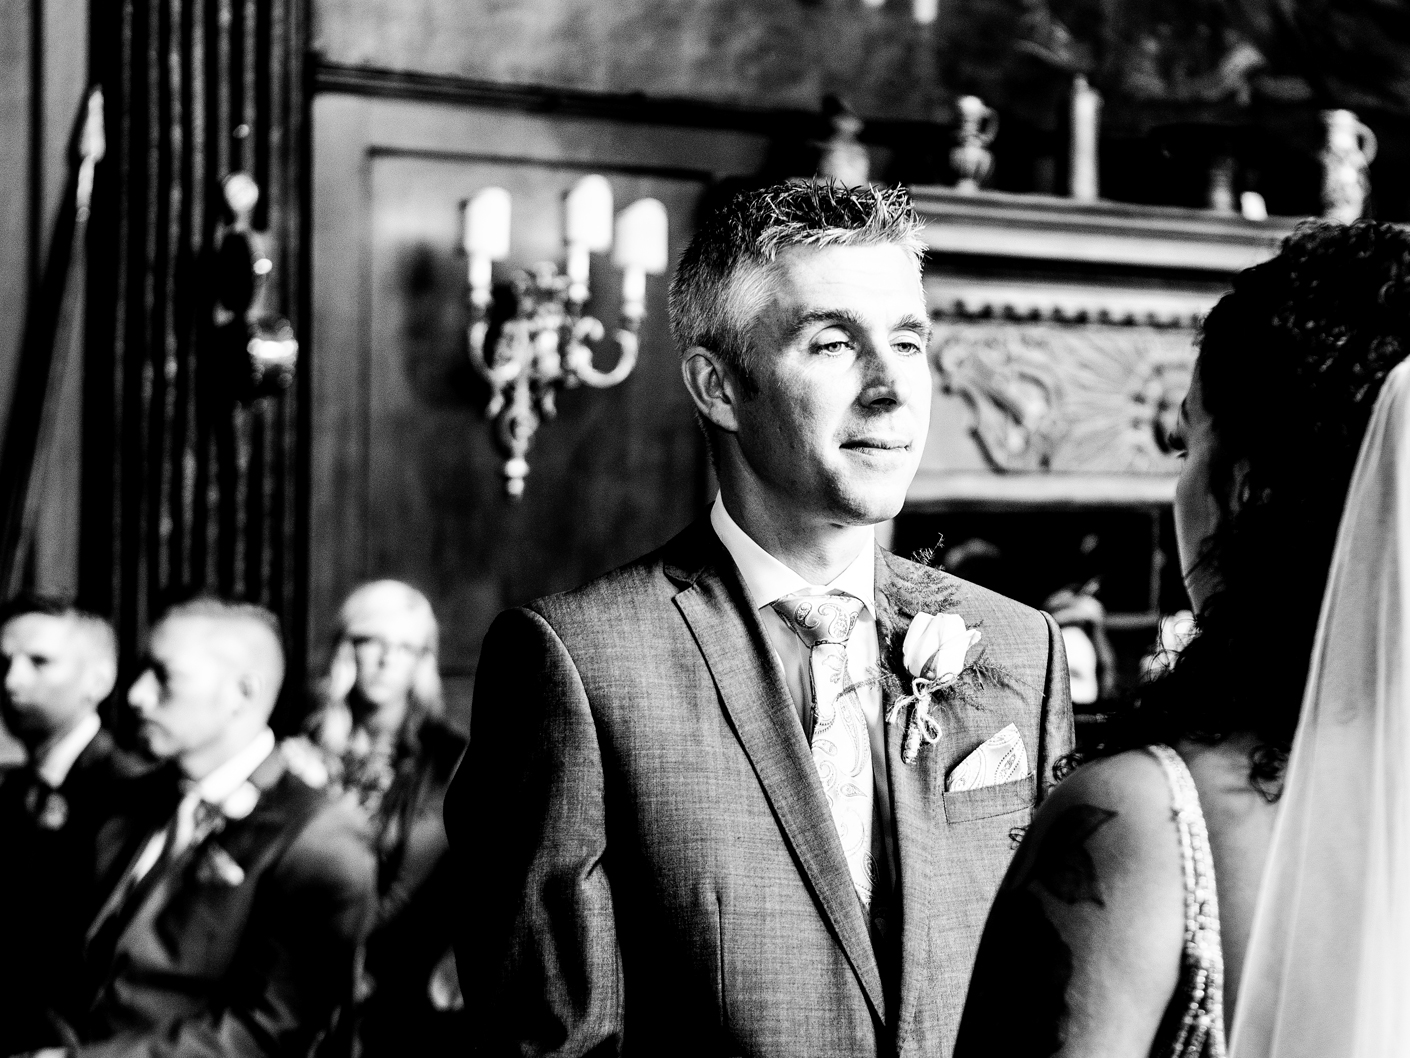 the-groom-at-the-wedding-ceremony-in-adlington-hall-cheshire